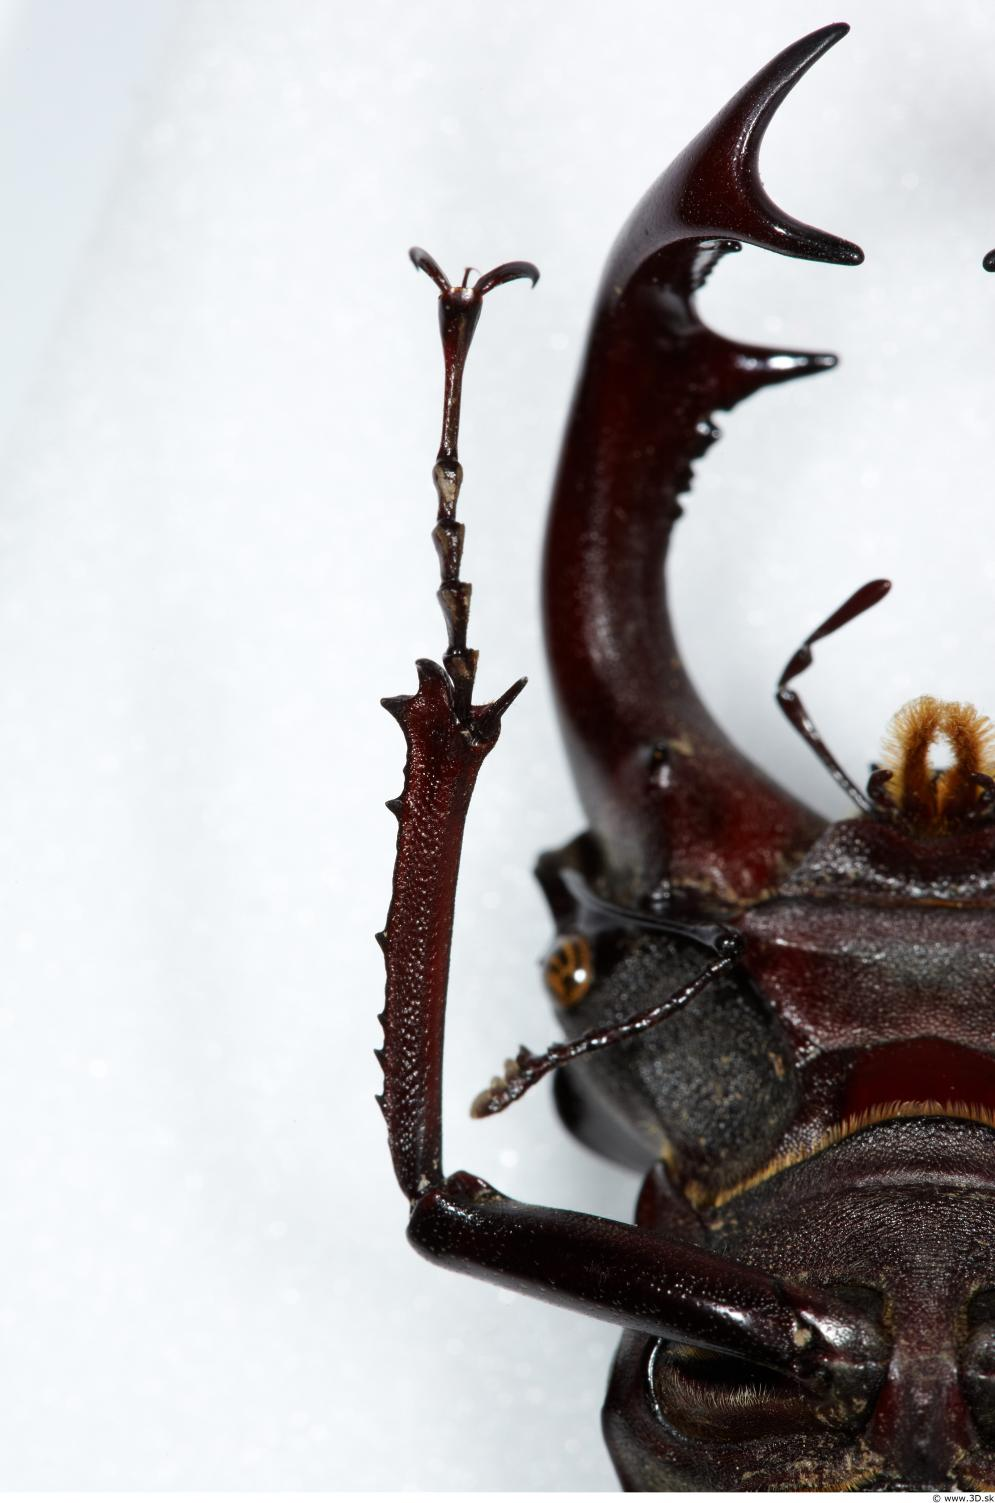 Image from Beetles - Animal photo references from 3D.sk - 401313beetles_0001_0033.jpg